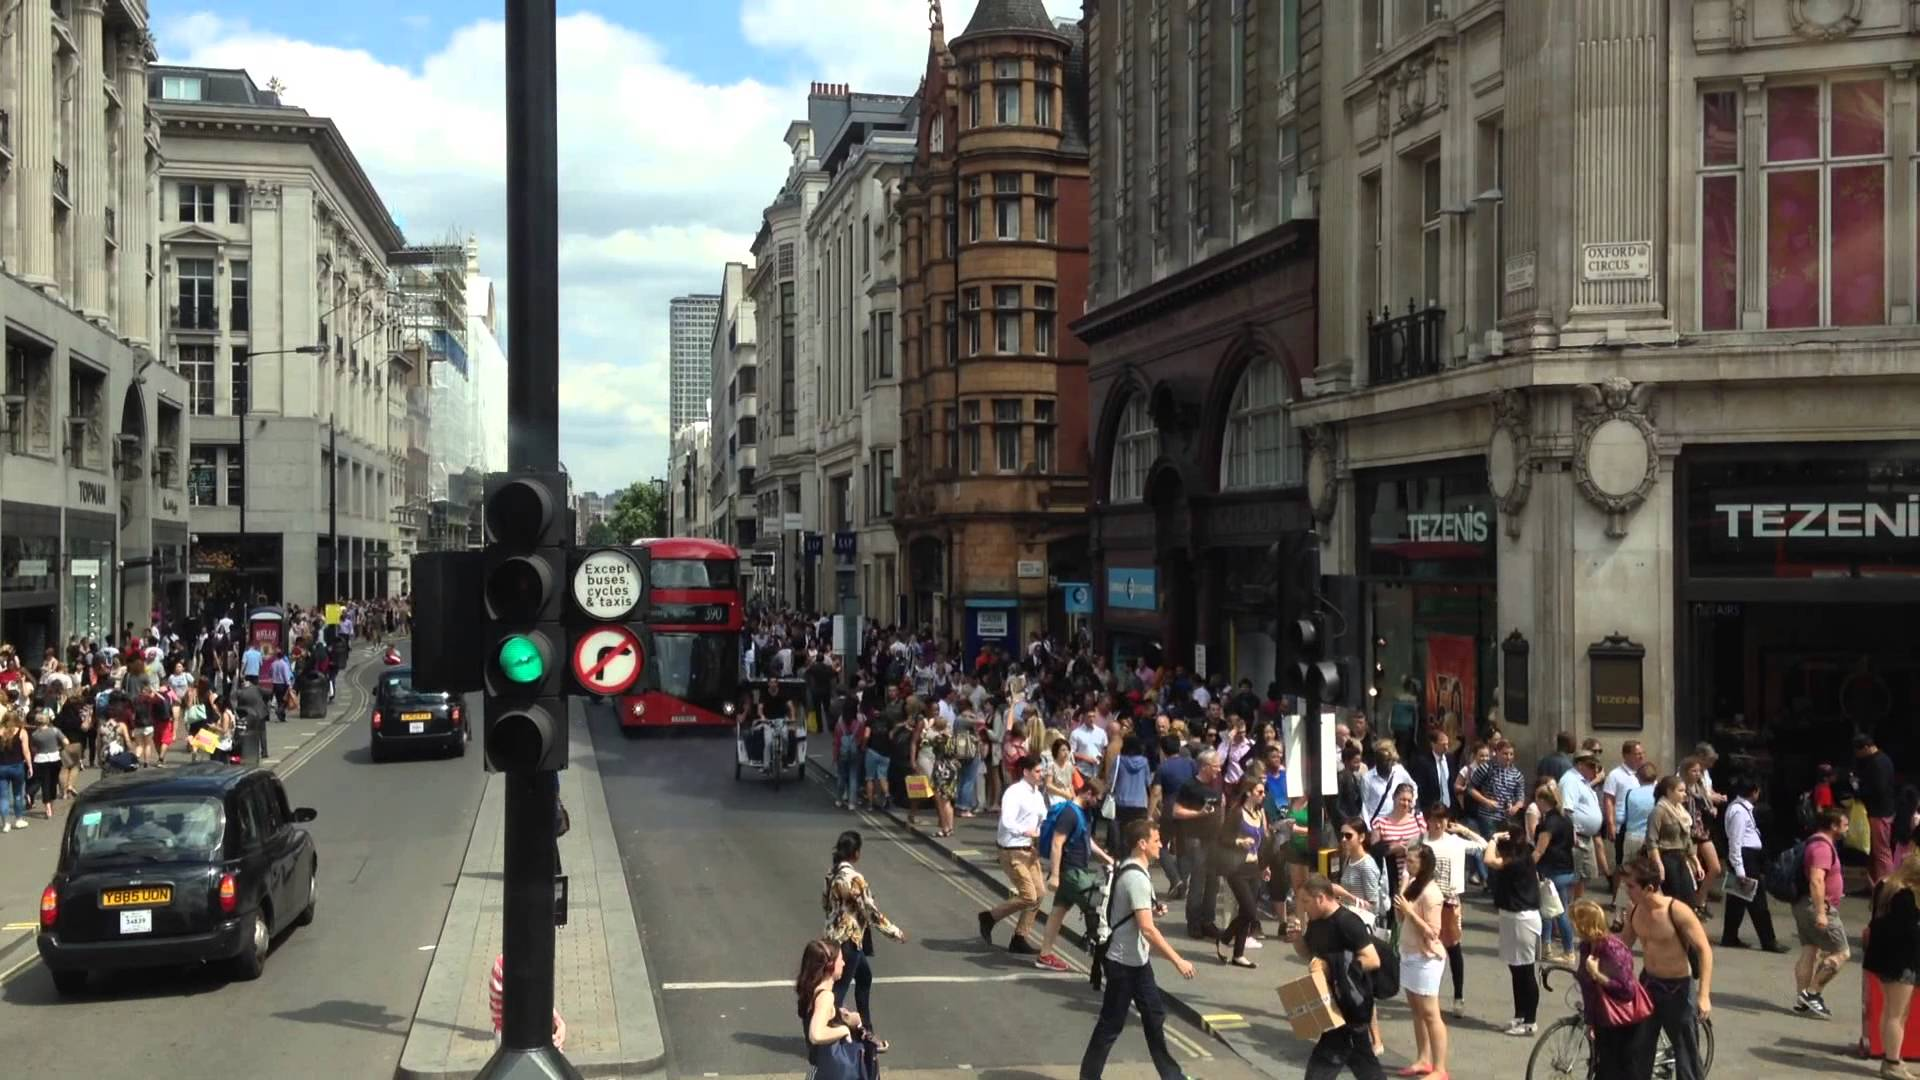 London Oxford street — a busy crossroad, view from the bus - YouTube